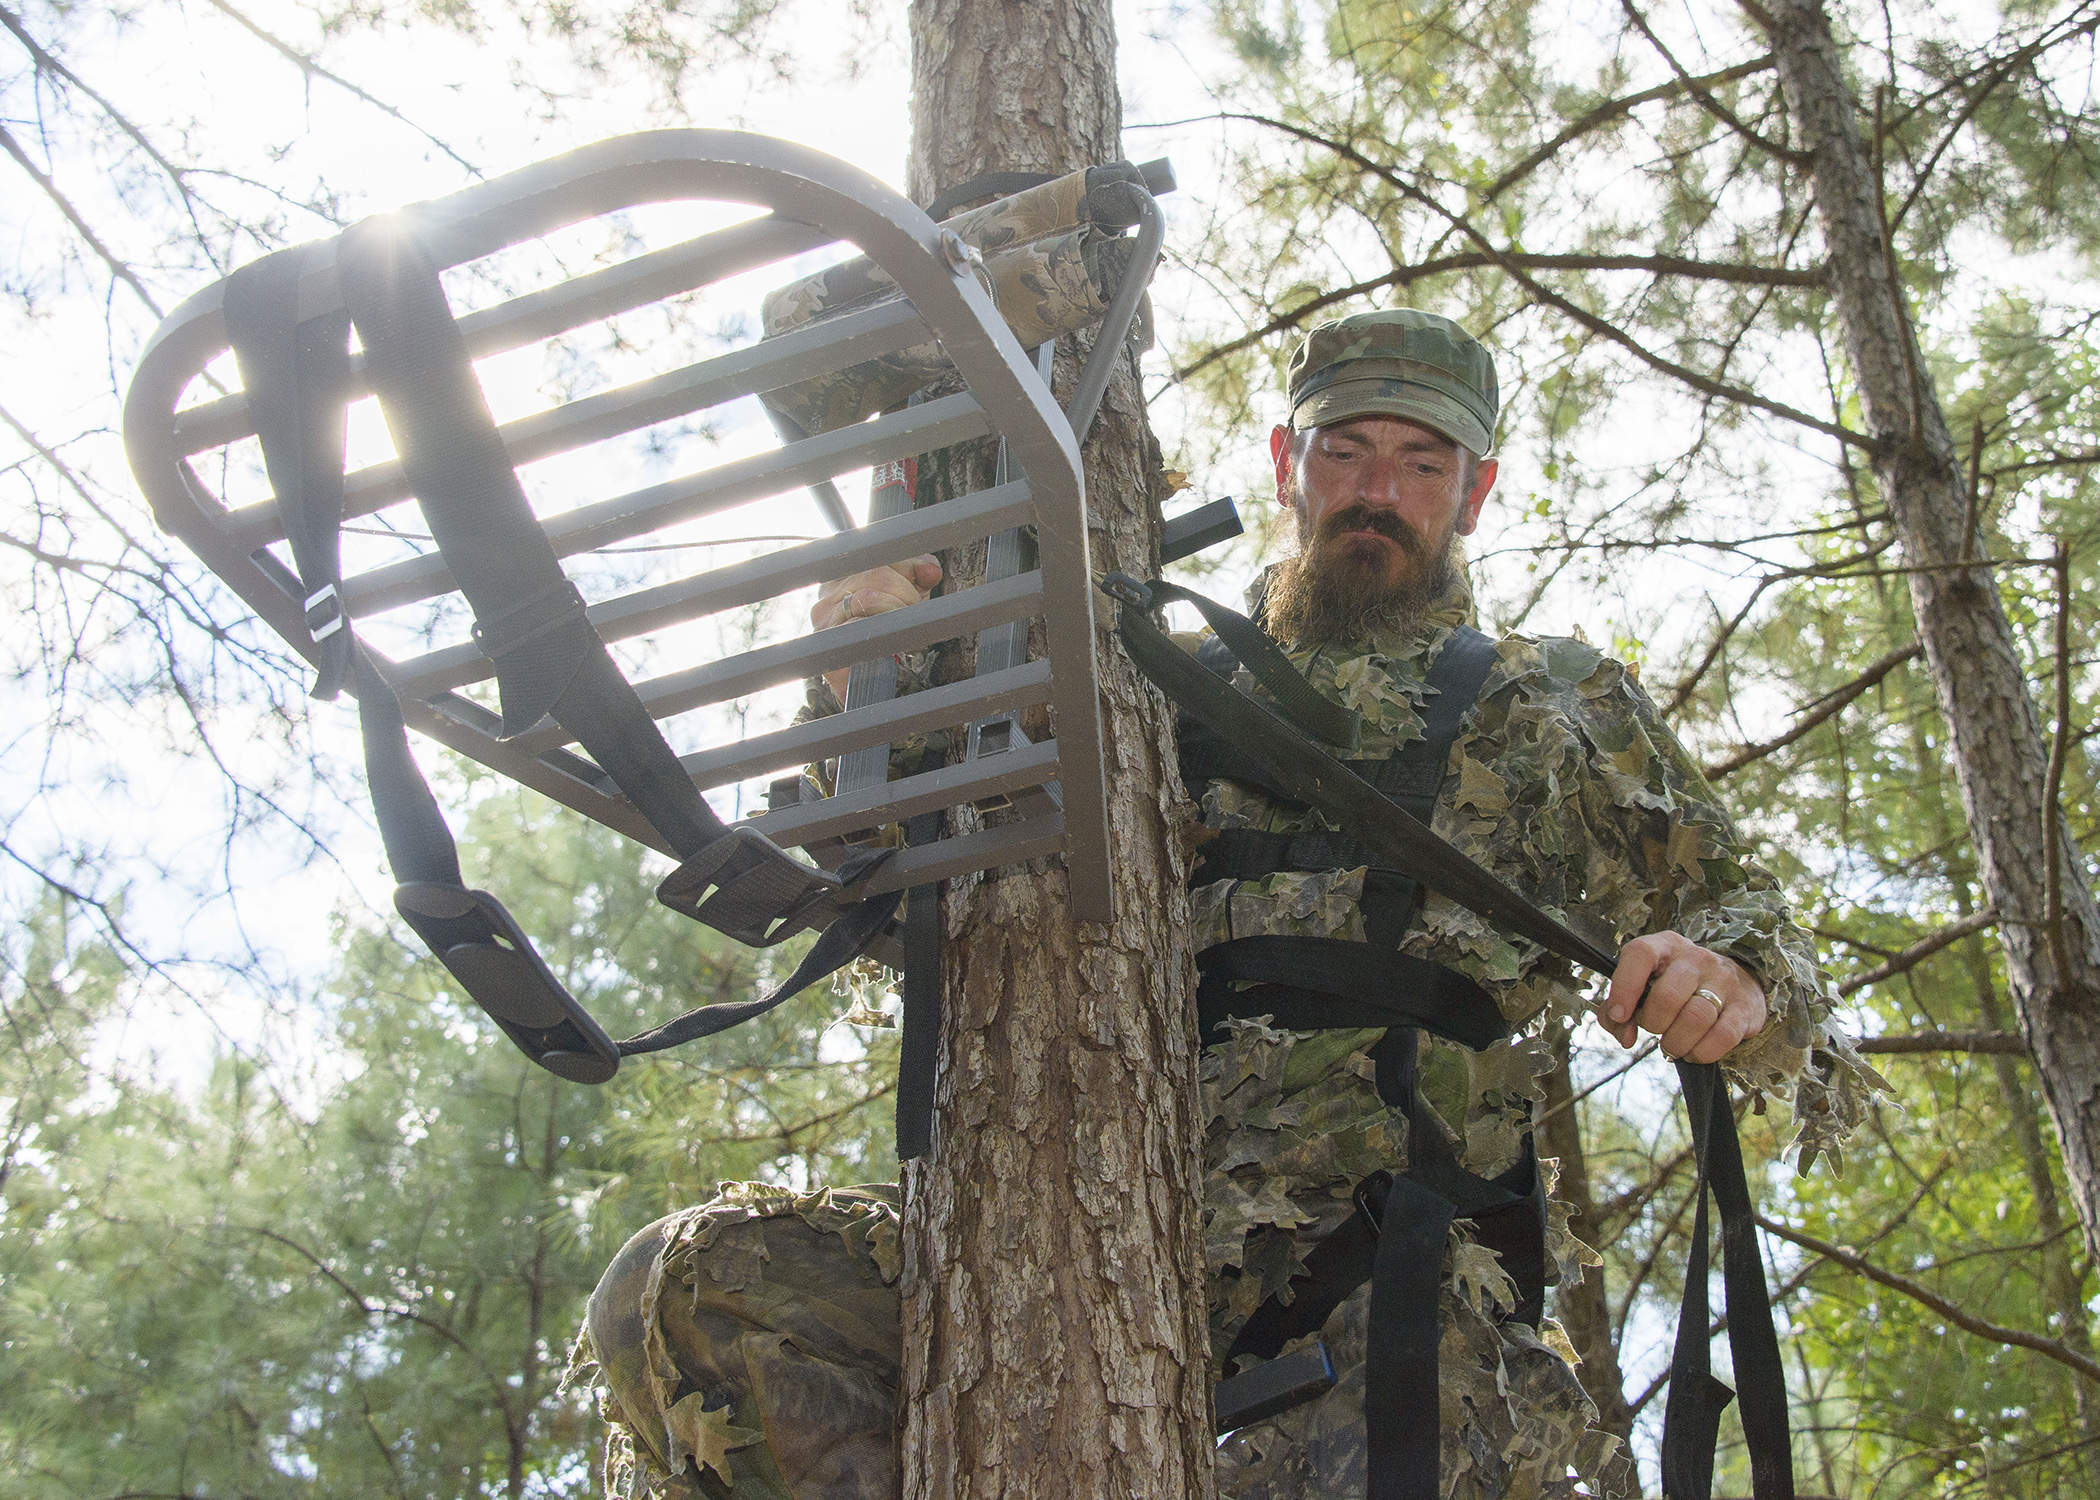 Take Extra Precautions When Using Tree Stands